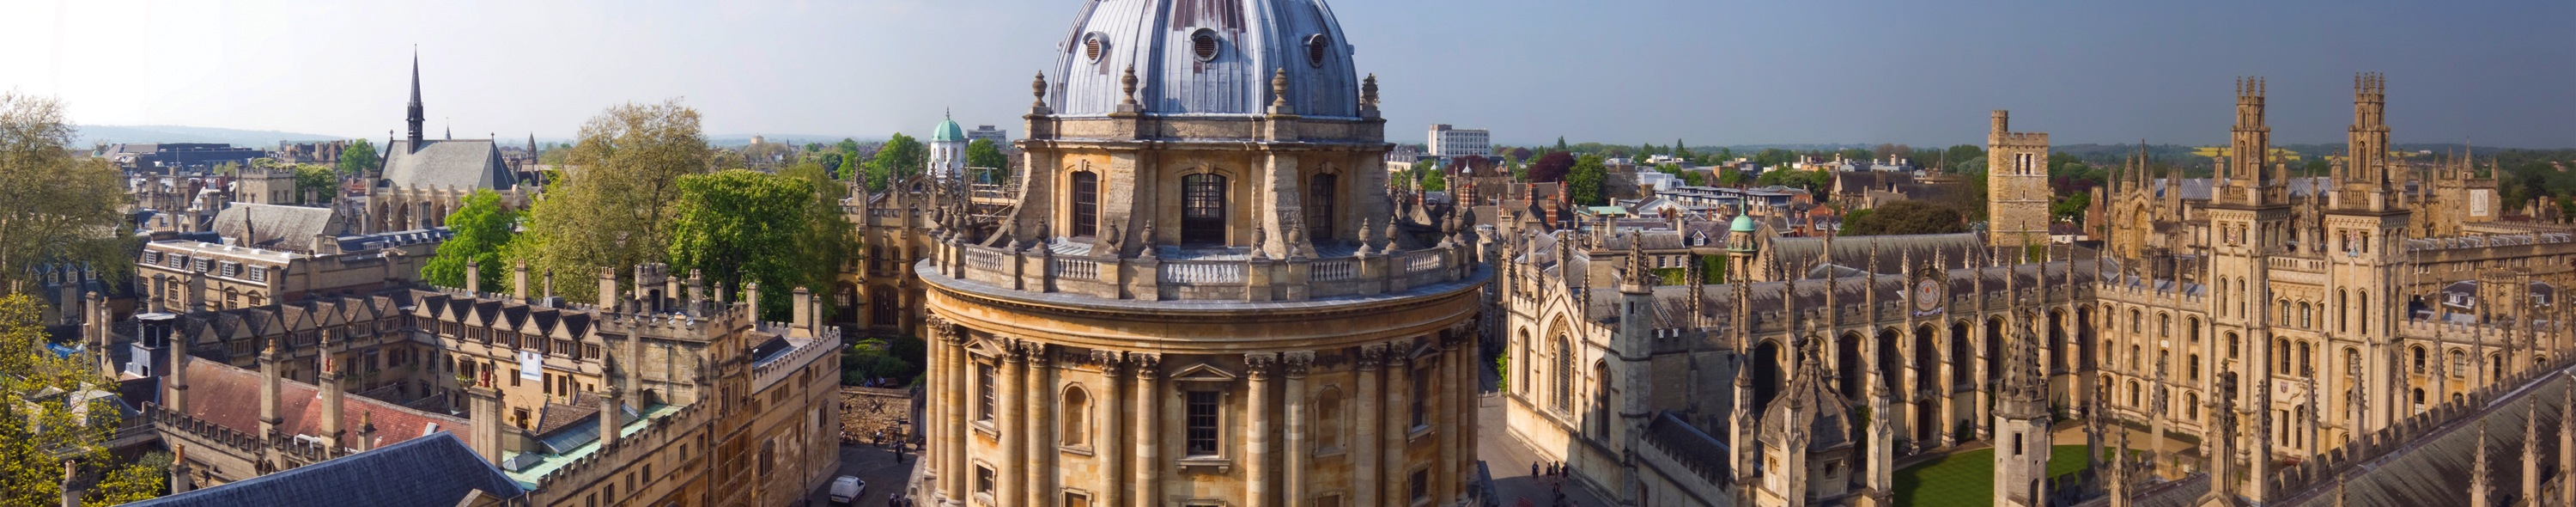 Choral Music Institute at Oxford Image